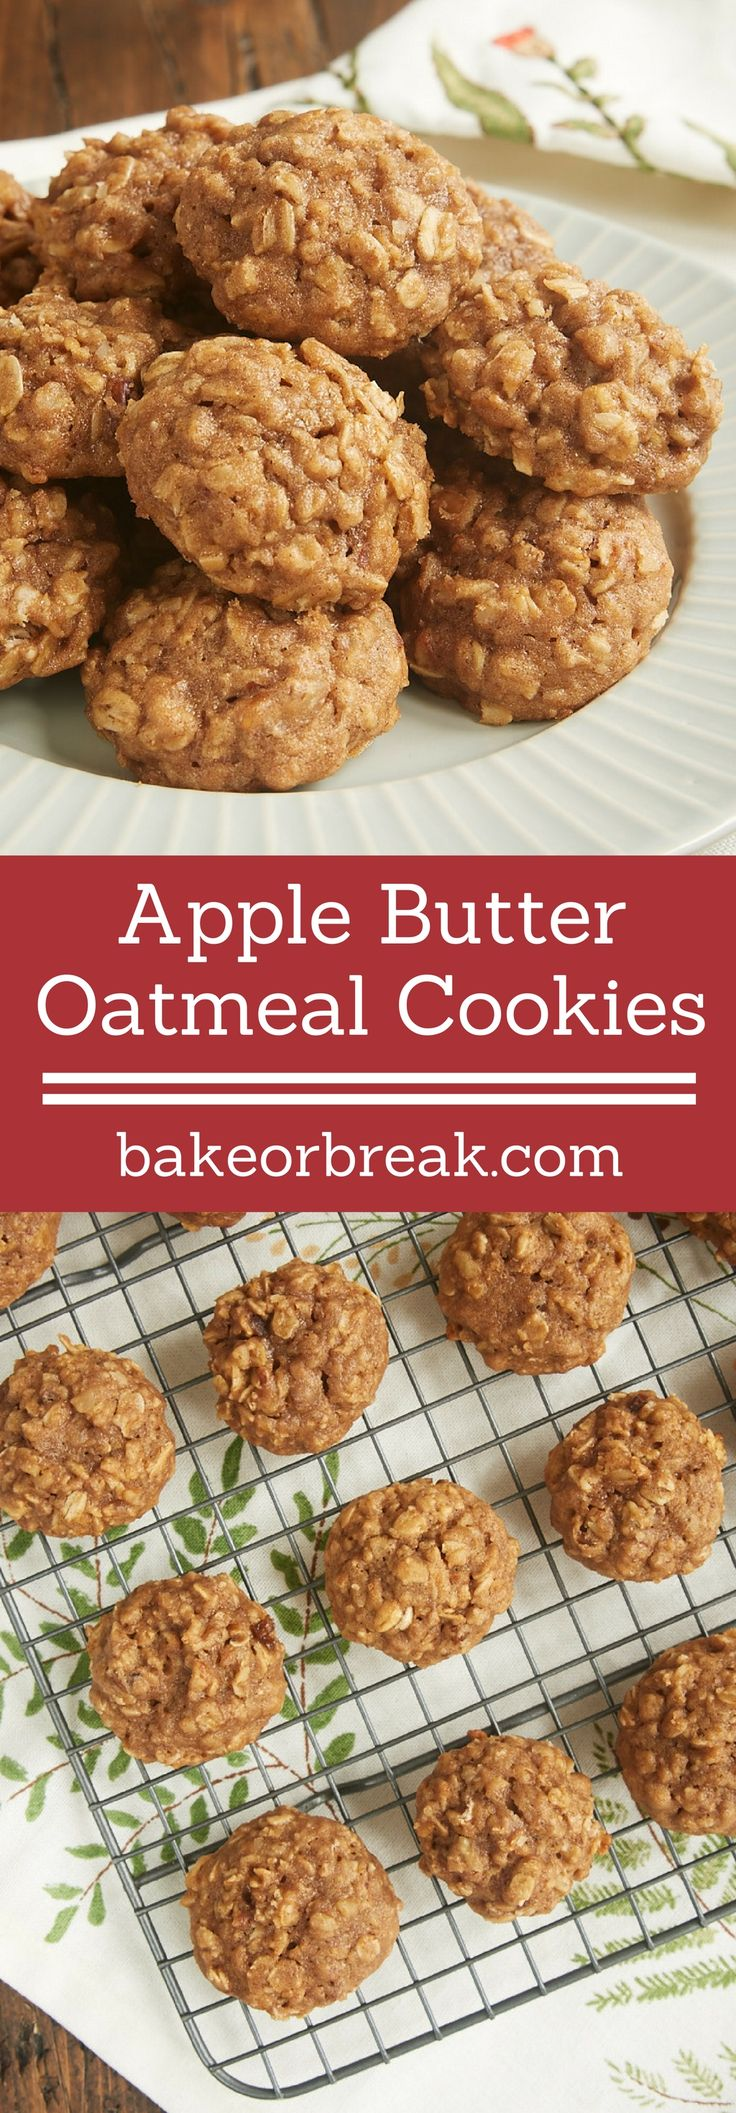 The sweet, spiced flavor of apple butter makes these soft, chewy Apple Butter Oatmeal Cookies wonderfully delicious! - Bake or Break ~ http://www.bakeorbreak.com